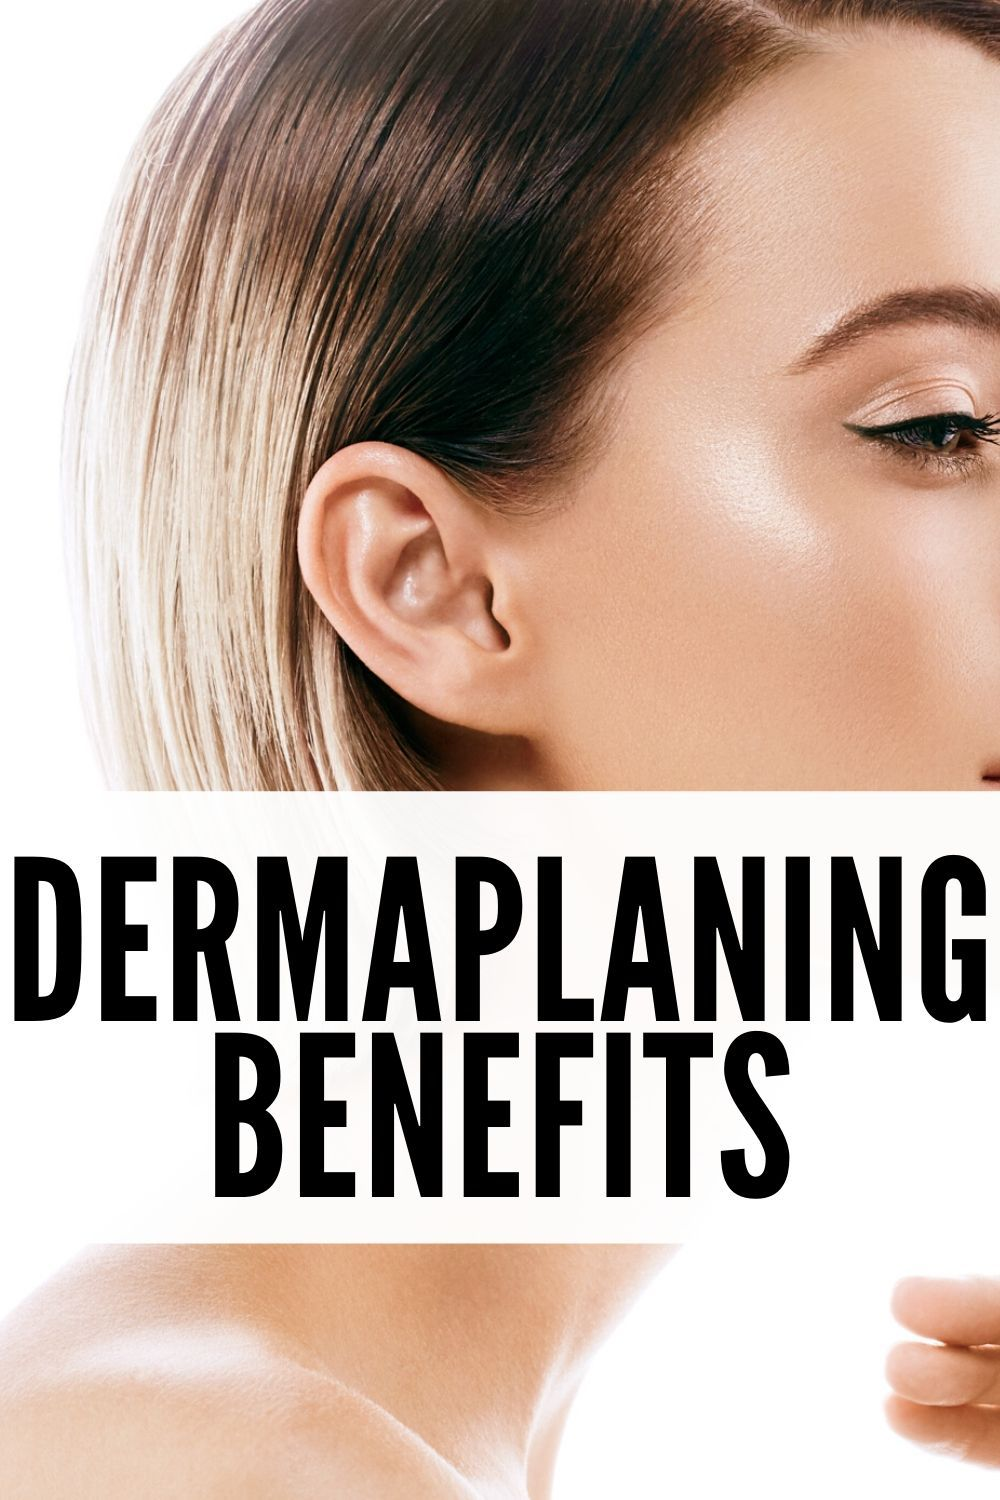 Dermaplaning At Home Benefits How to Dermaplane At Home